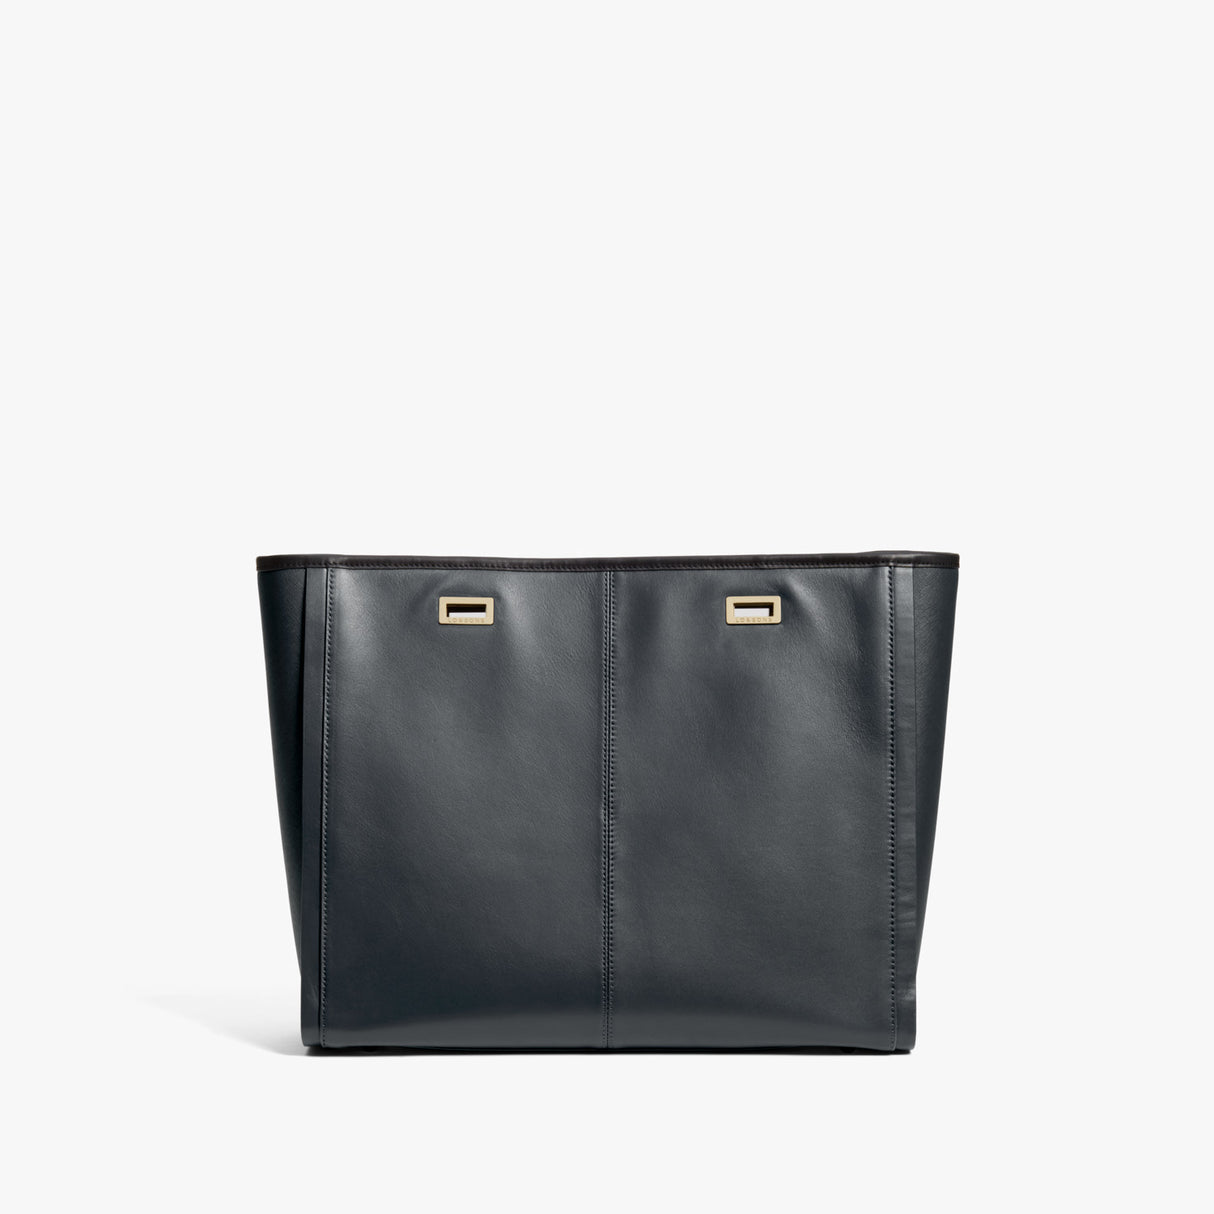 Back - The Seville Prima Shell - Nappa & Saffiano Leather - Dark Grey / Gold / Black - Tote - Lo & Sons